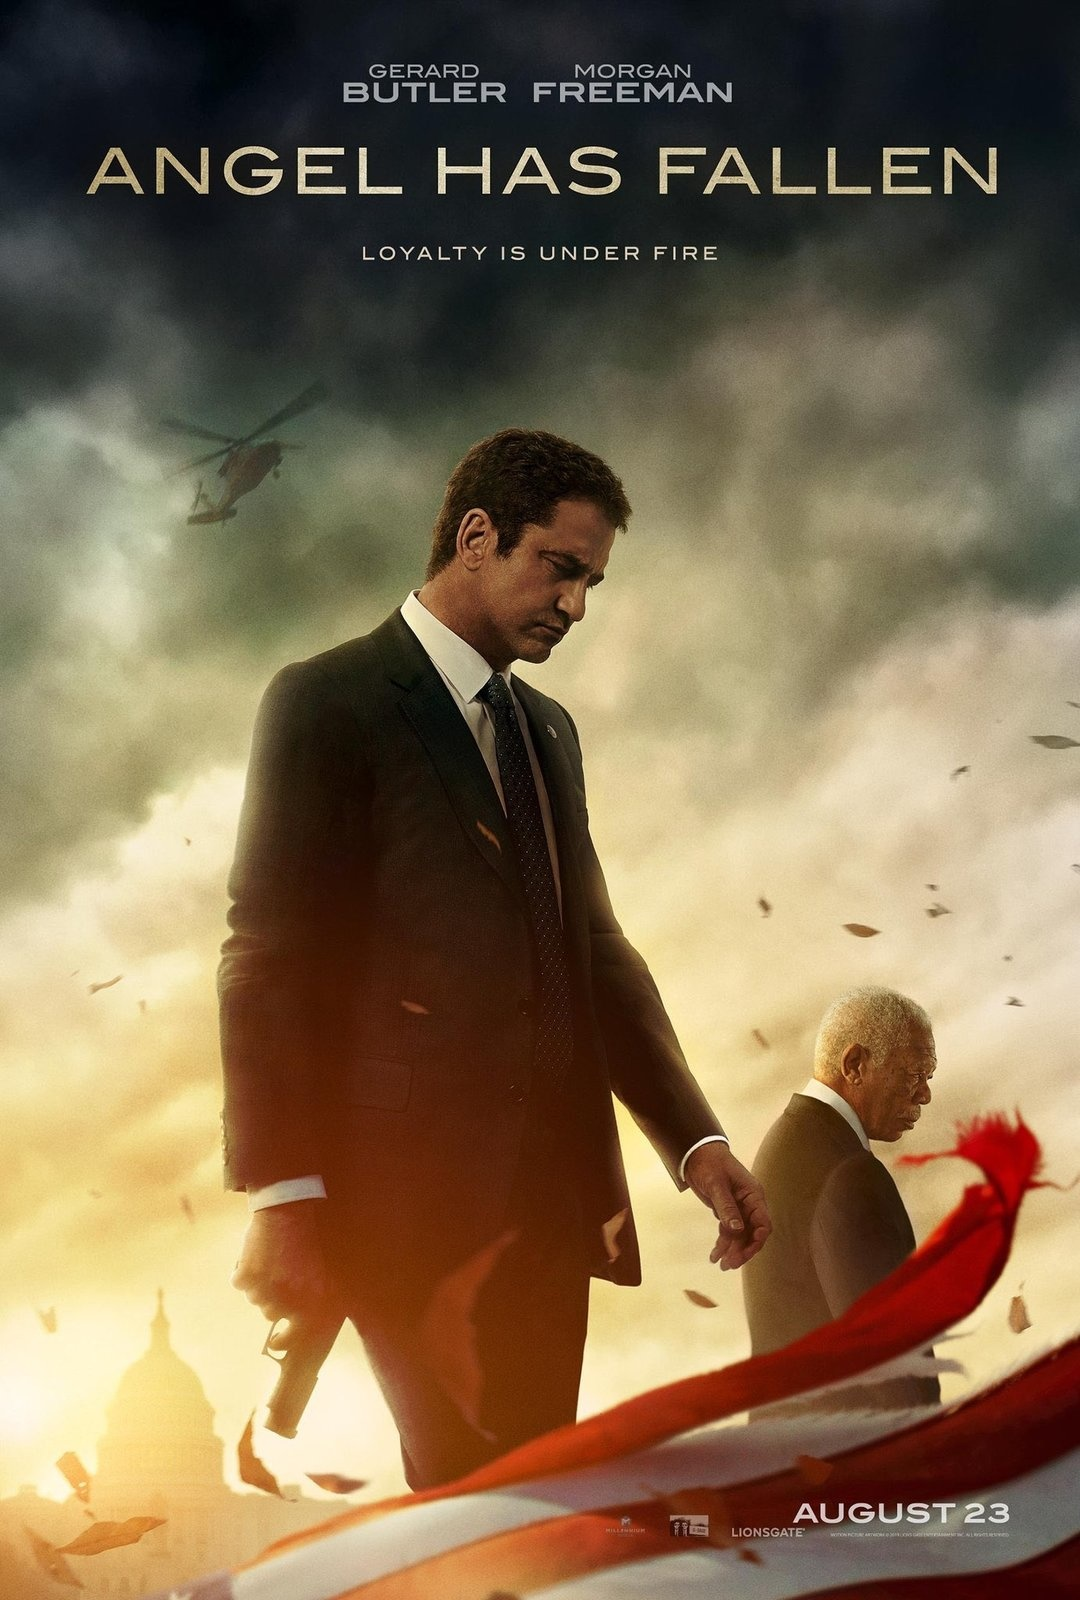 Angel Has Fallen Movie 2 Free Online